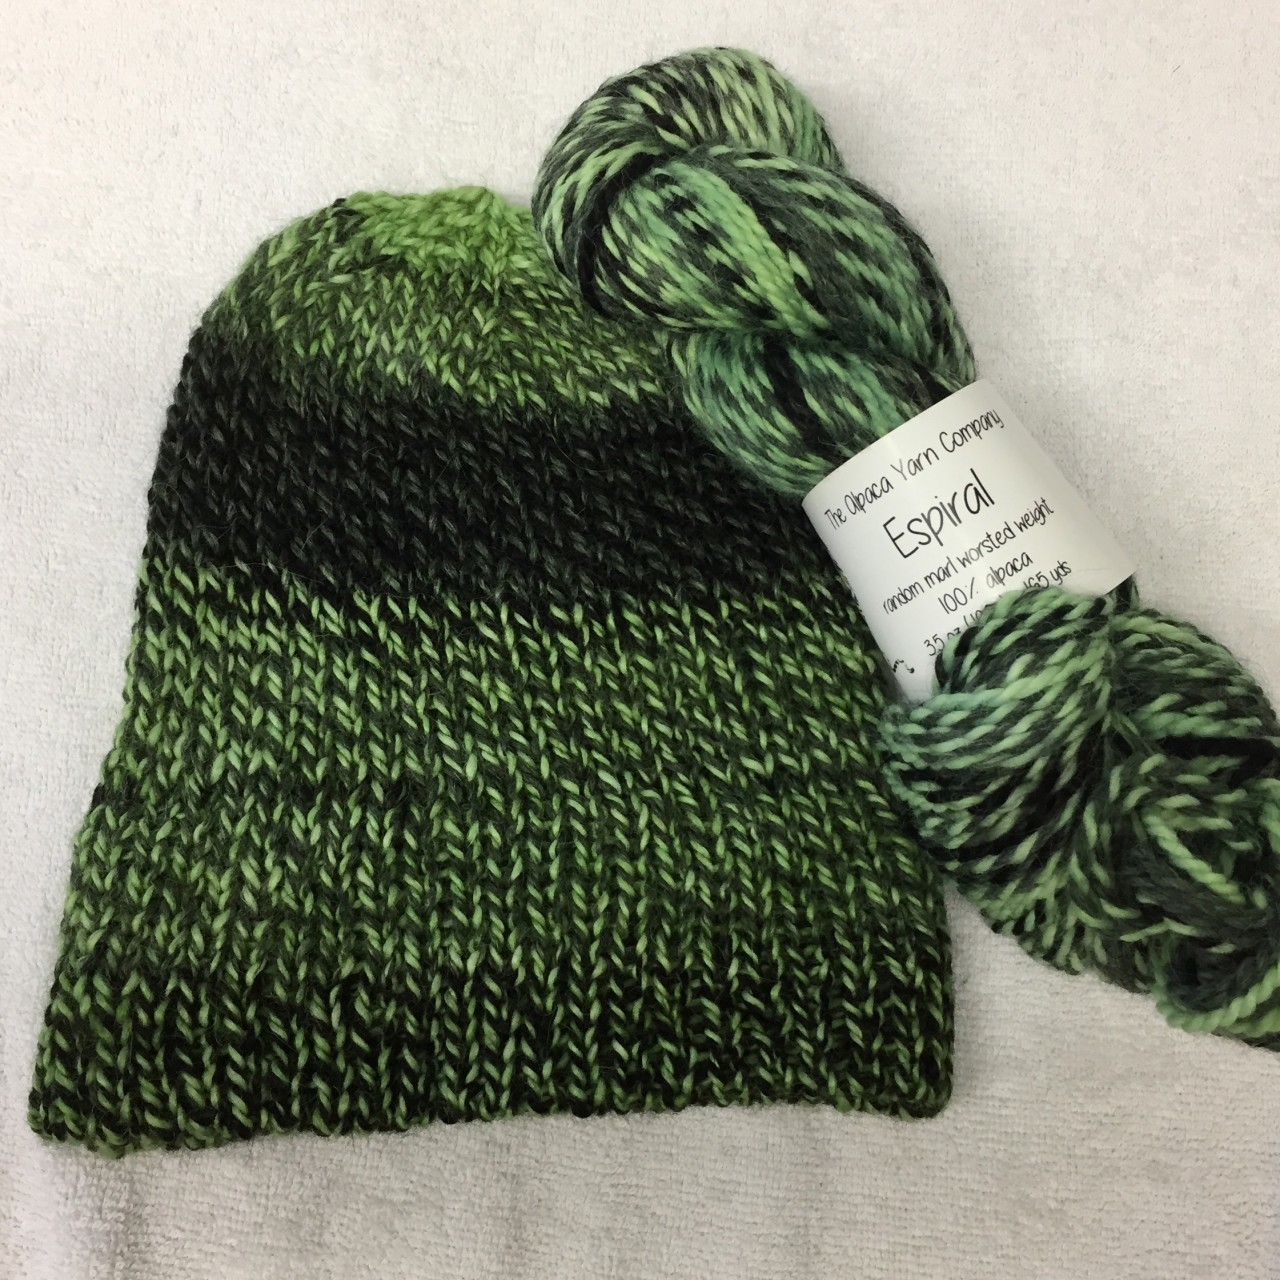 Espiral Alpaca Yarn - Key Lime